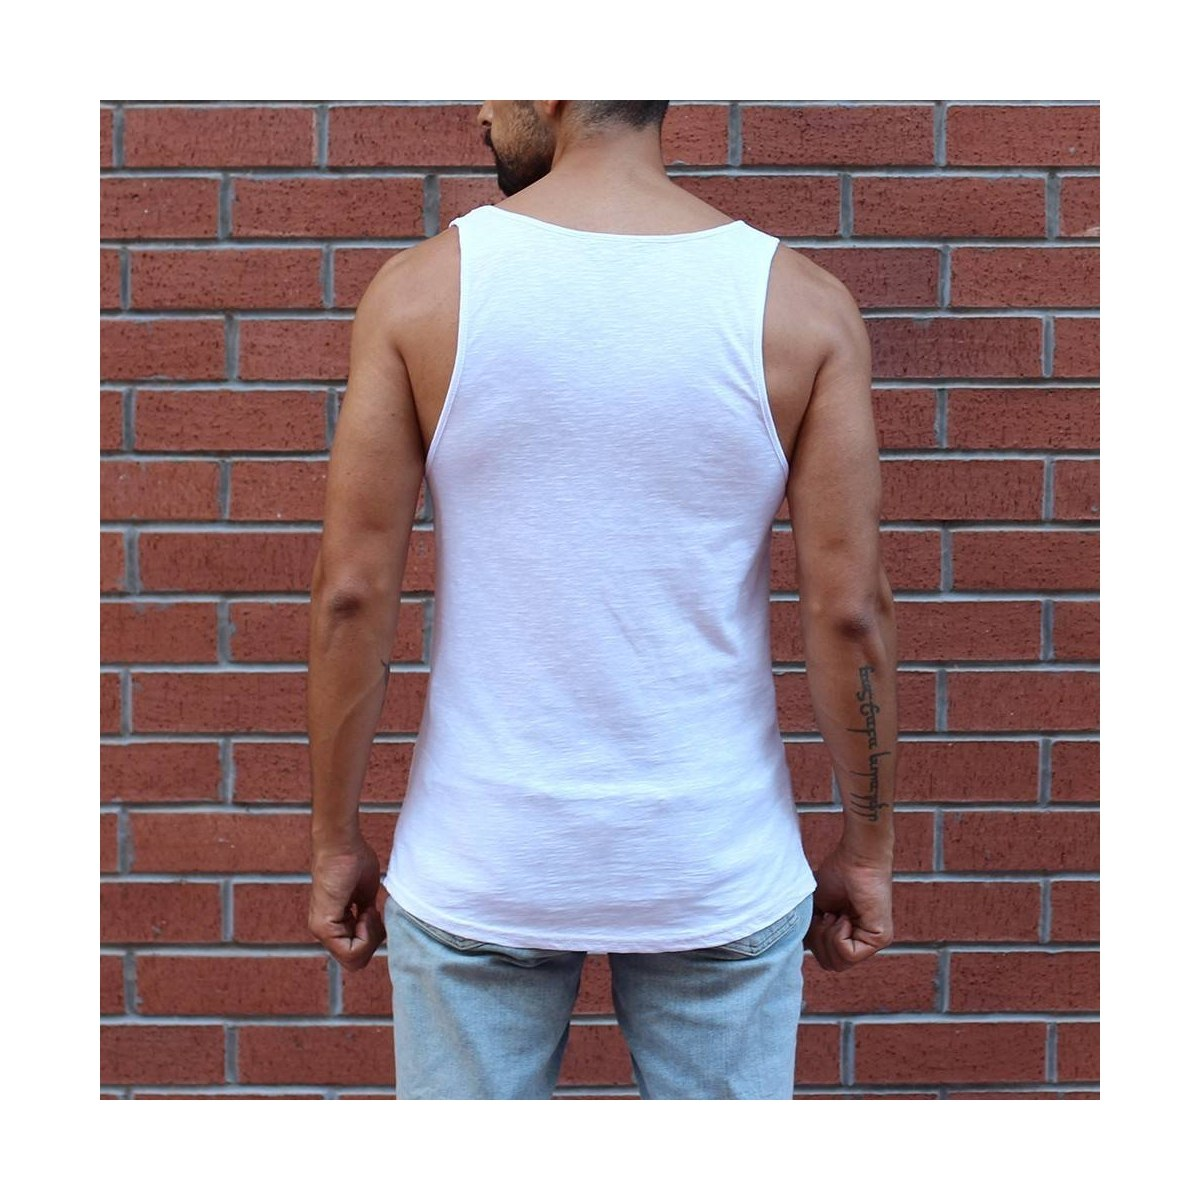 Men's Motivation Pattern Tank Top in White MV Brand - 2